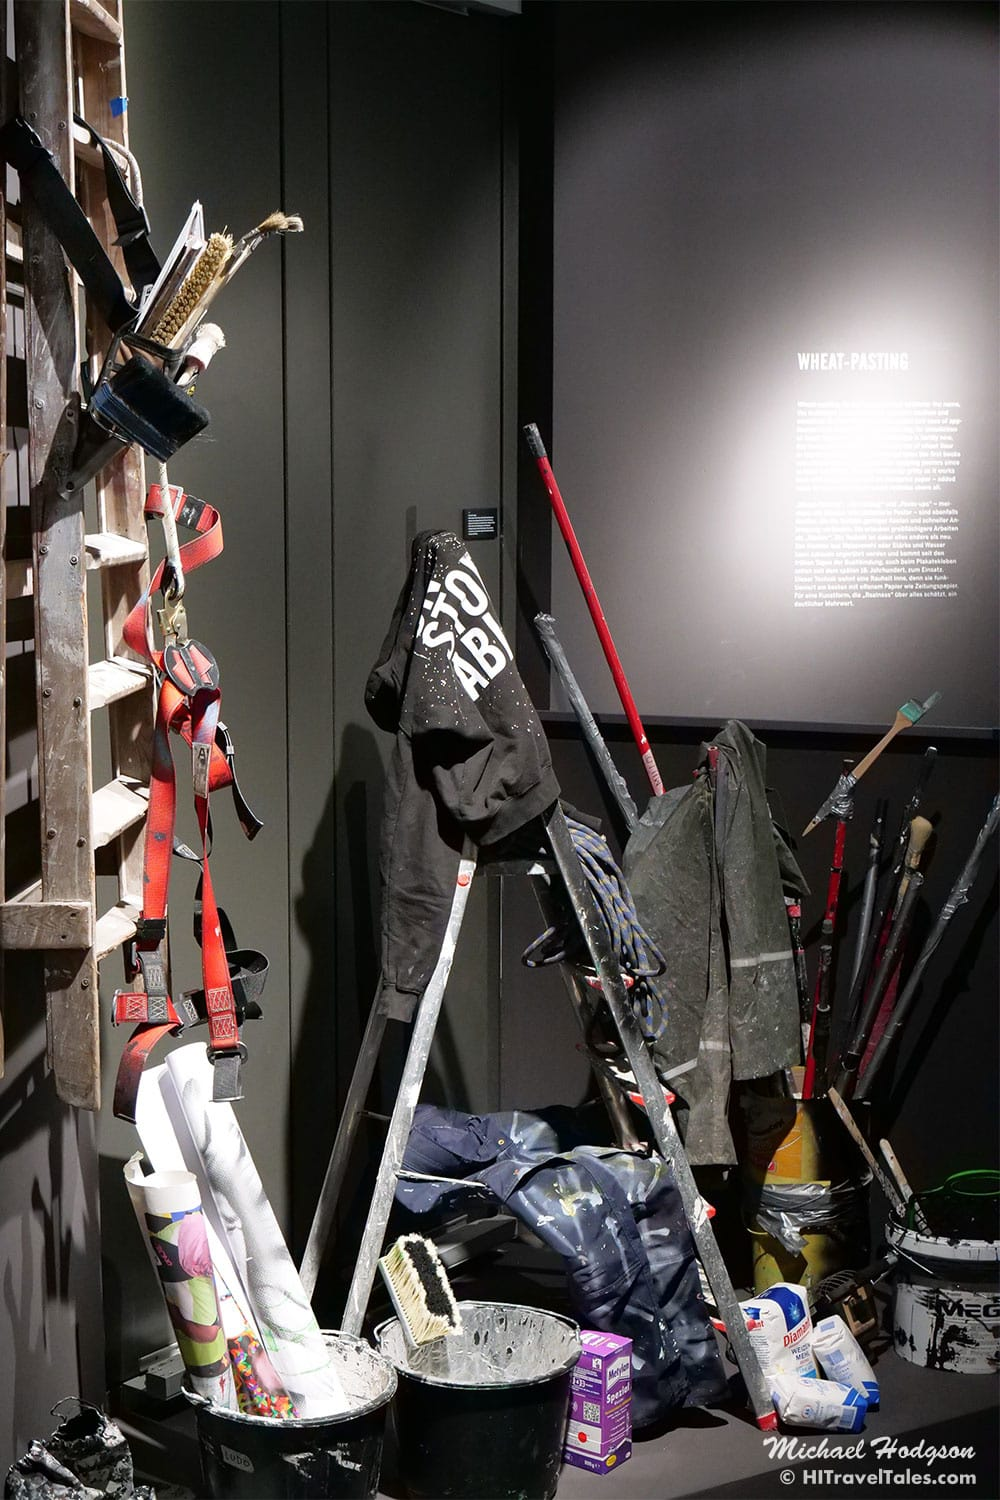 A display showing the various tools used by urban or street artists to create their artwork.